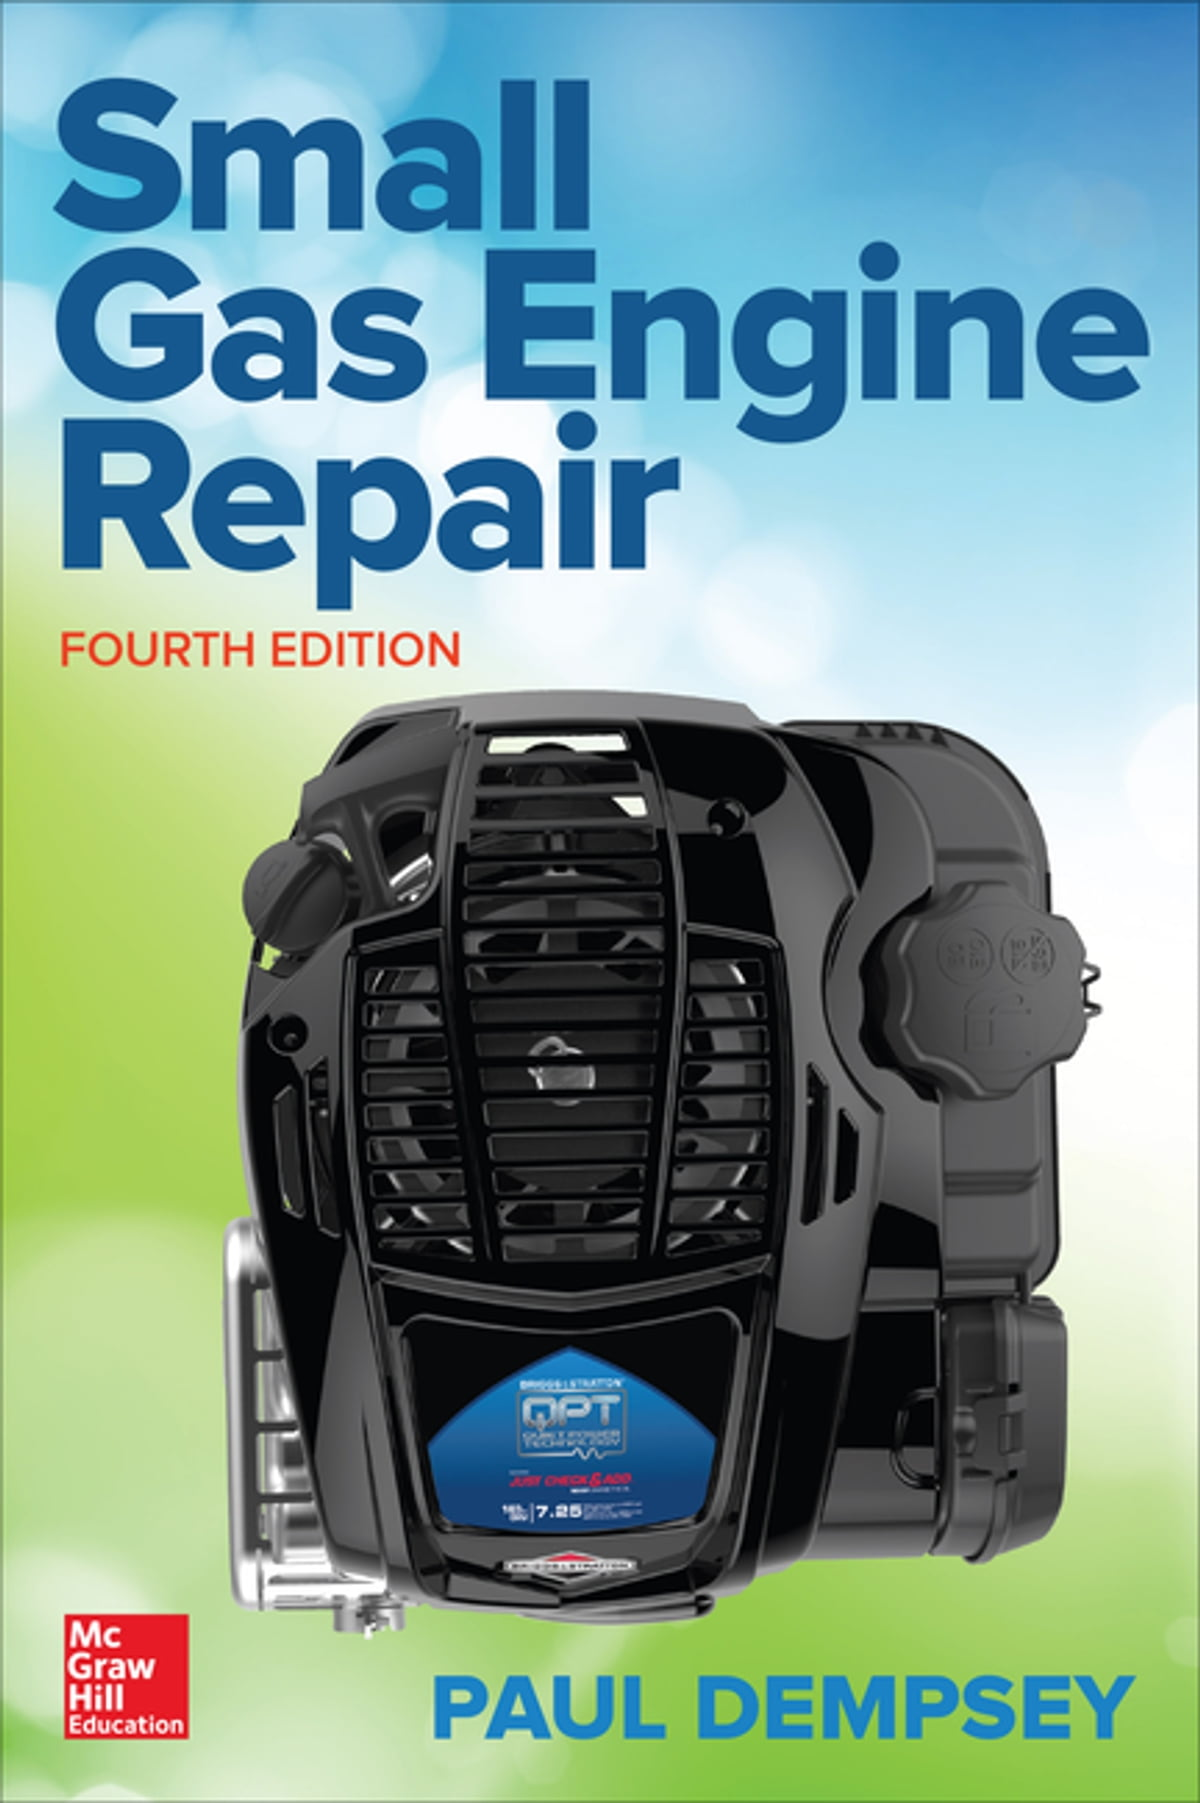 Small Gas Engine Repair, Fourth Edition eBook by Paul Dempsey -  9781259861574 | Rakuten Kobo